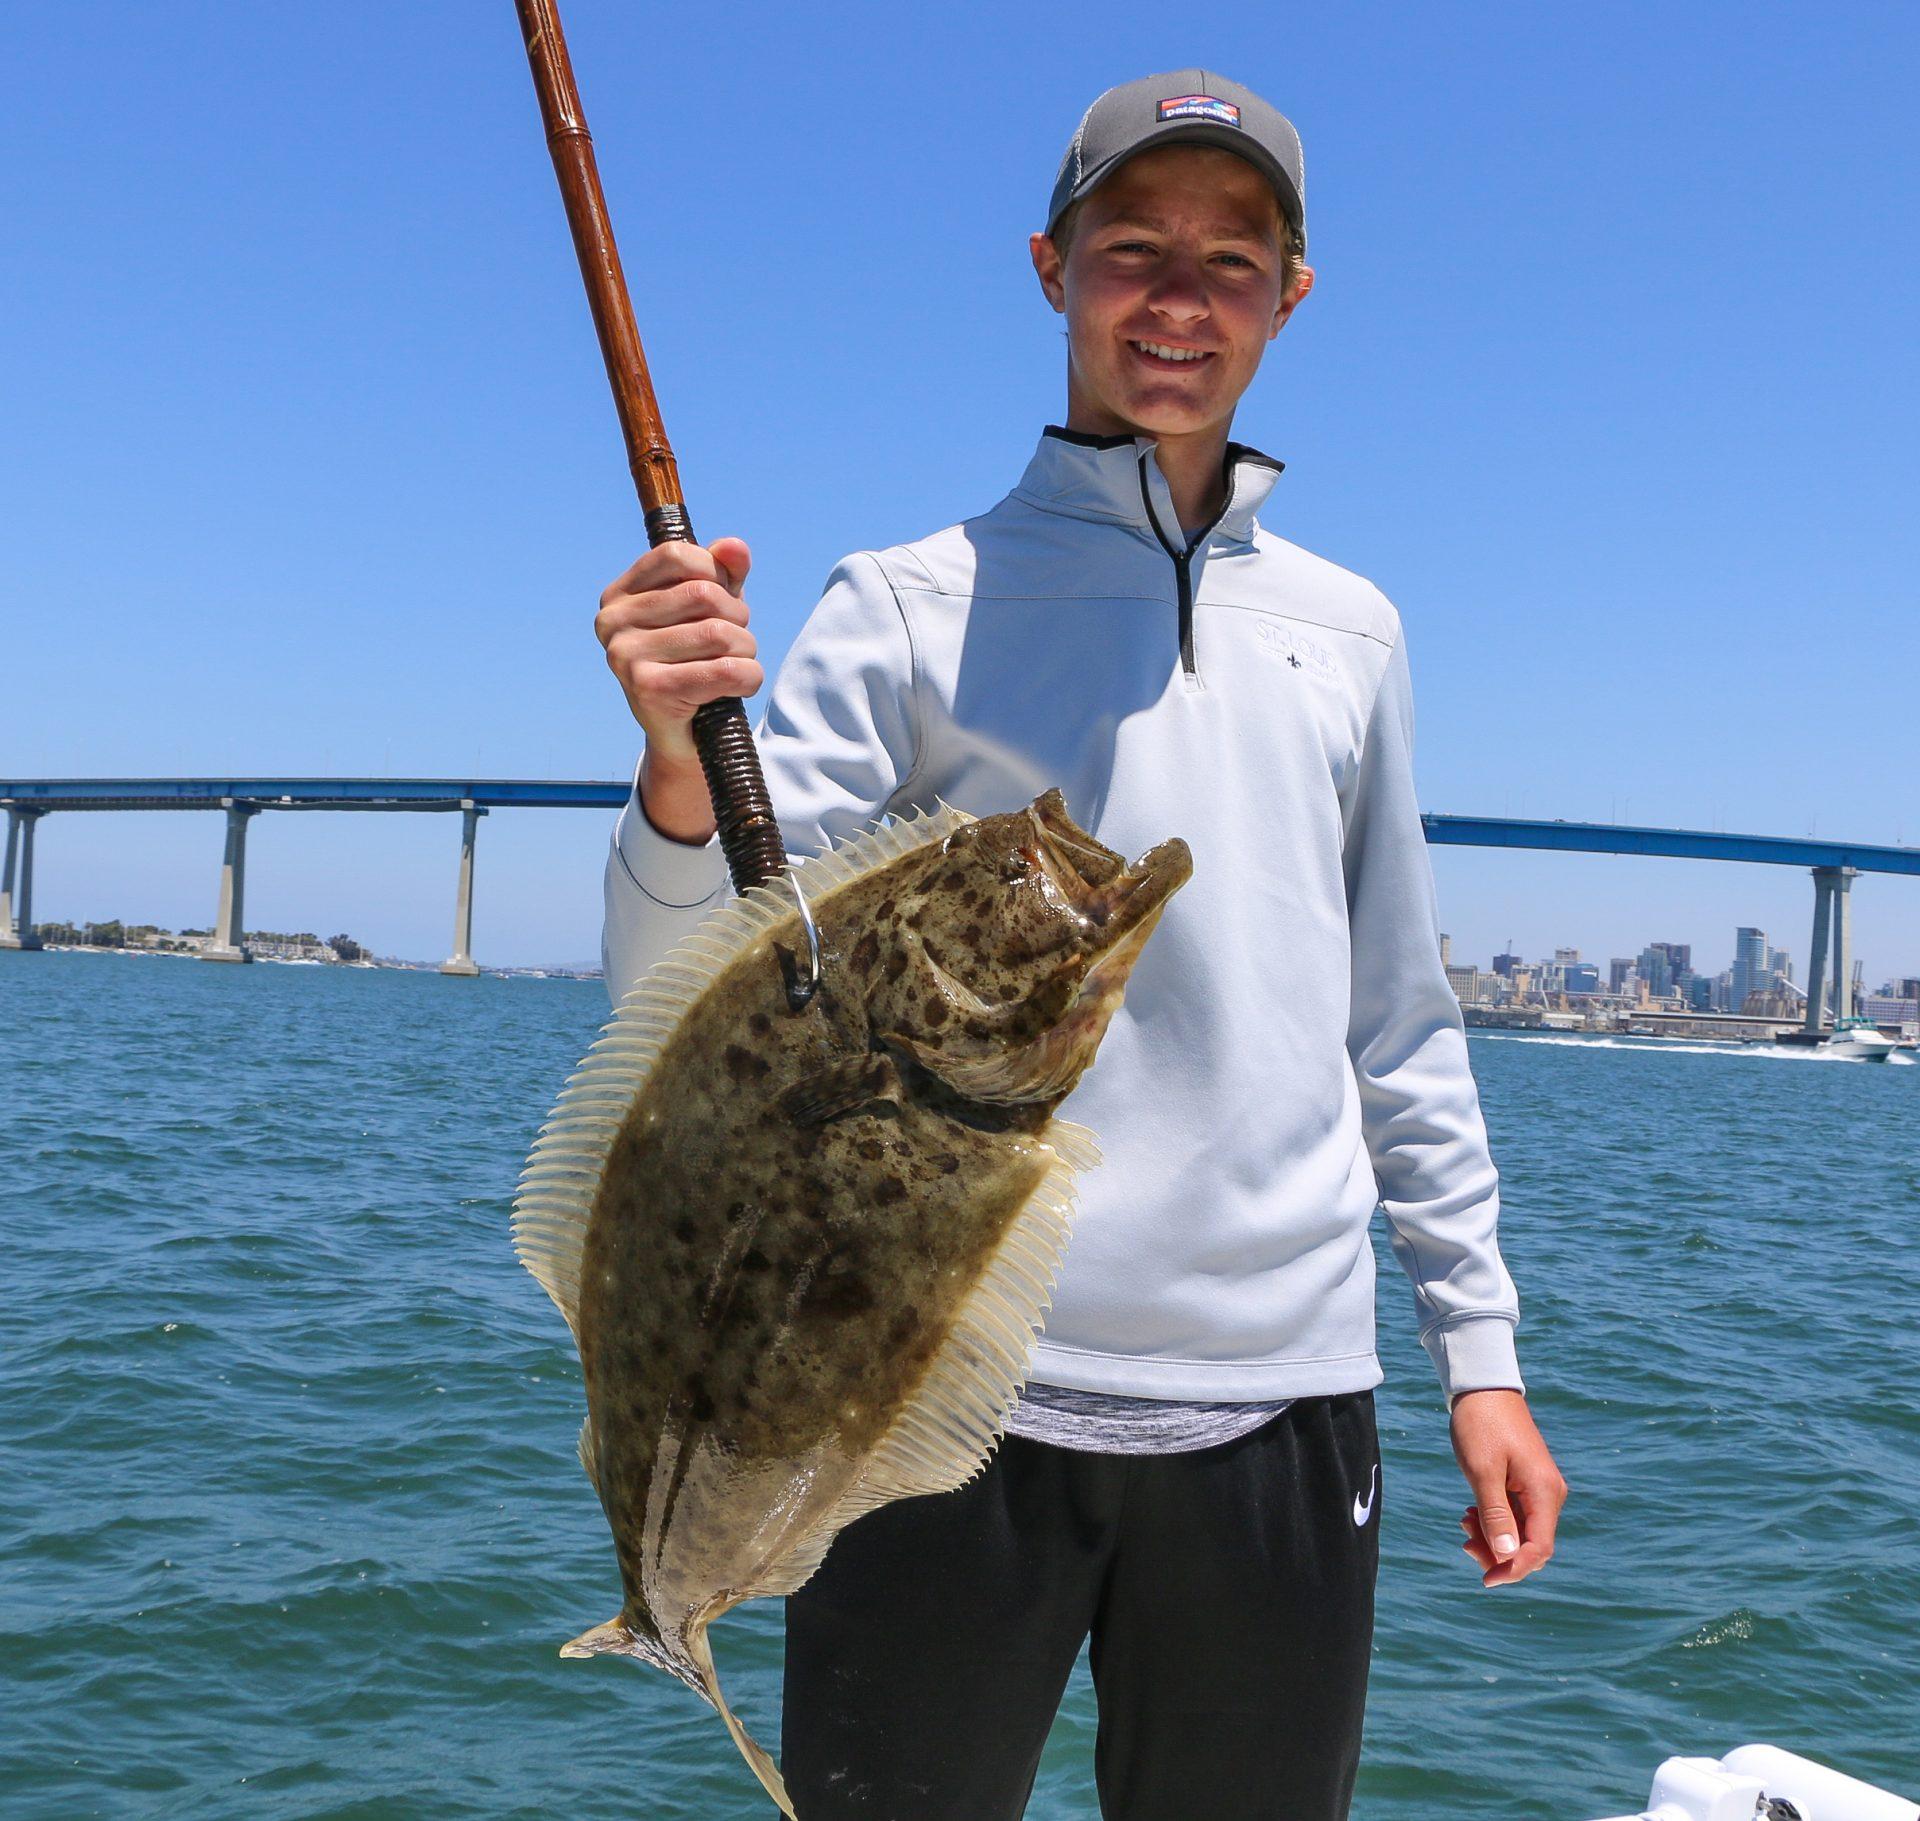 San diego bay fishing report 6 28 7 4 risen tide for San diego fish report